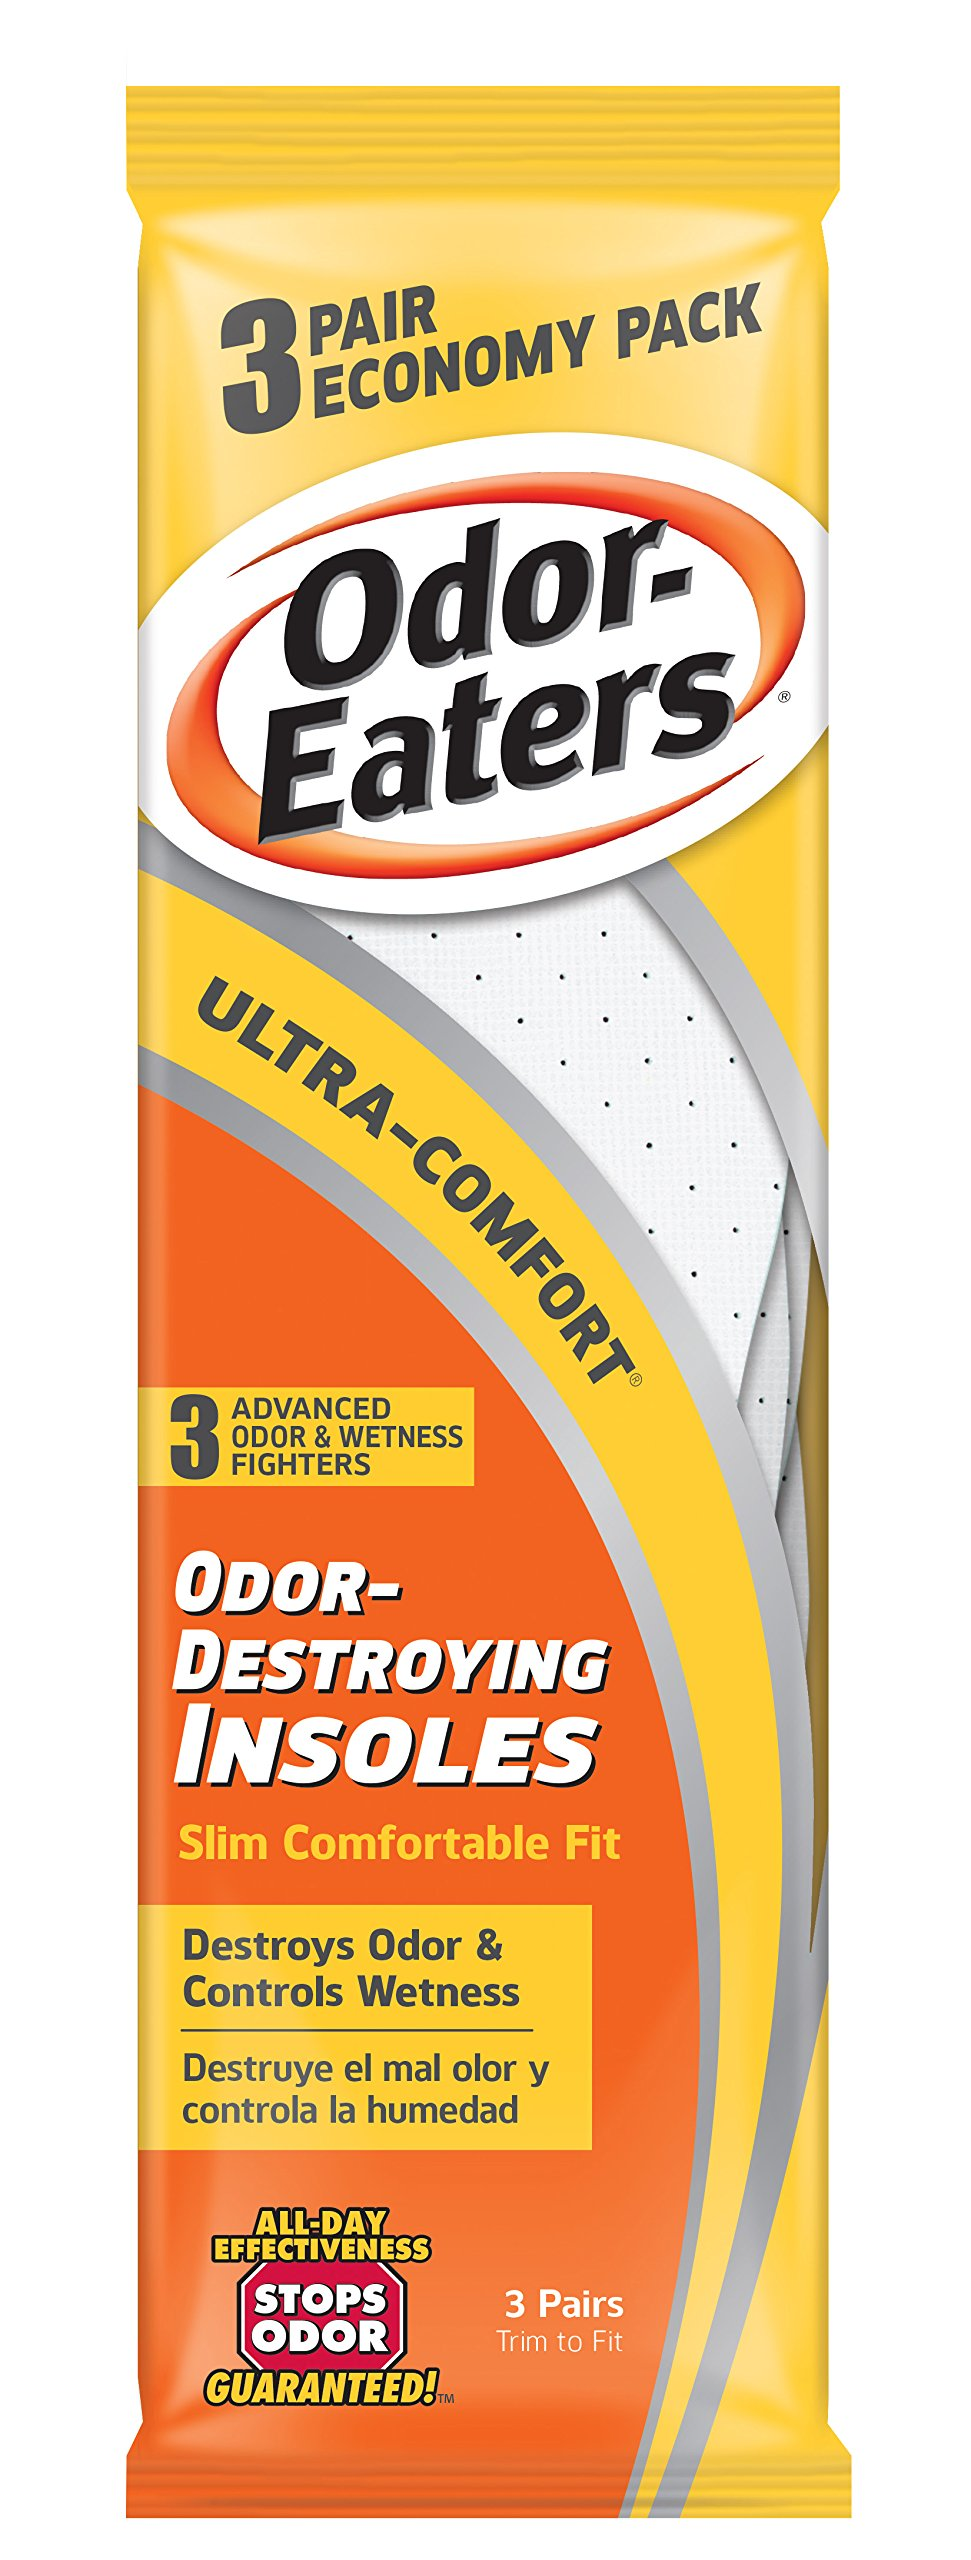 Odor-Eaters Ultra Comfort Odor-Destroying Insoles, One Size Fits All, Economy Pack, 3 Pairs per Pack, (Case of 3 Packs) by Odor-Eaters